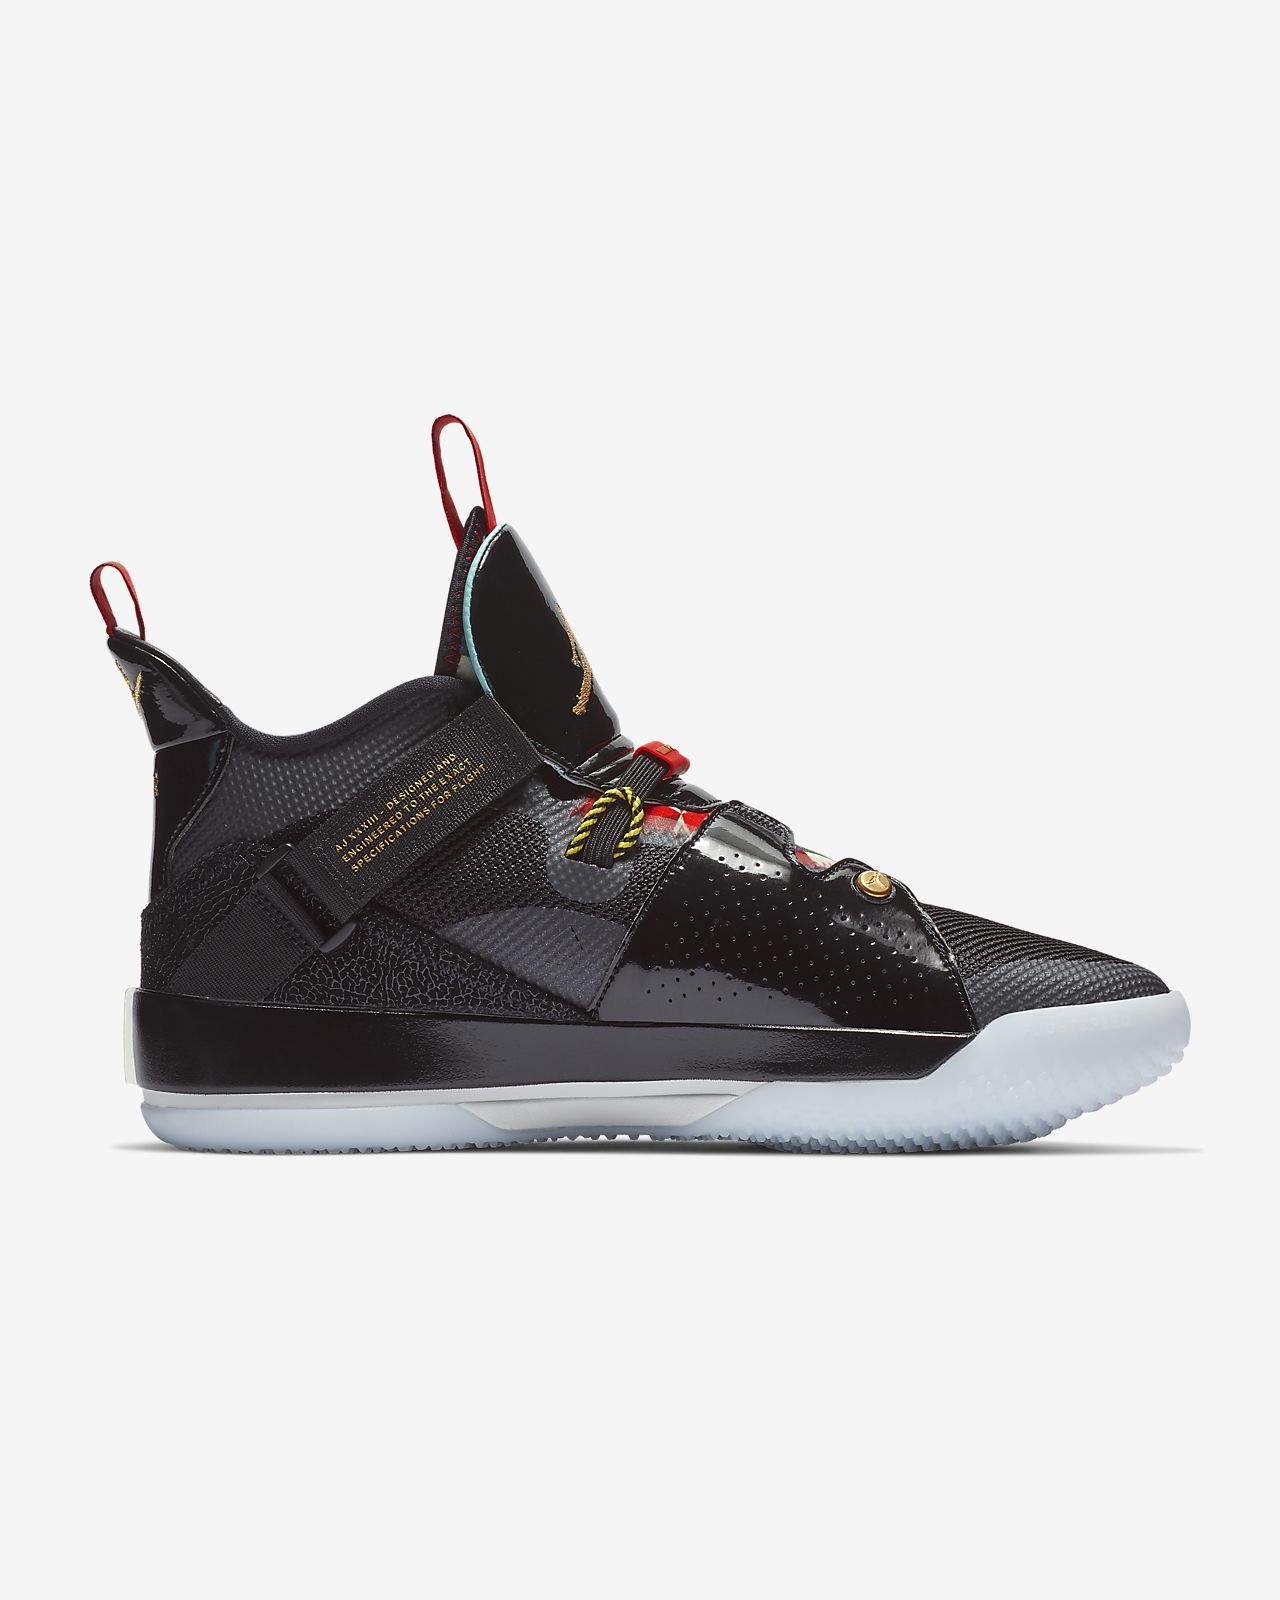 detailing 13174 6dcb9 Low Resolution Air Jordan XXXIII Basketball Shoe Air Jordan XXXIII  Basketball Shoe